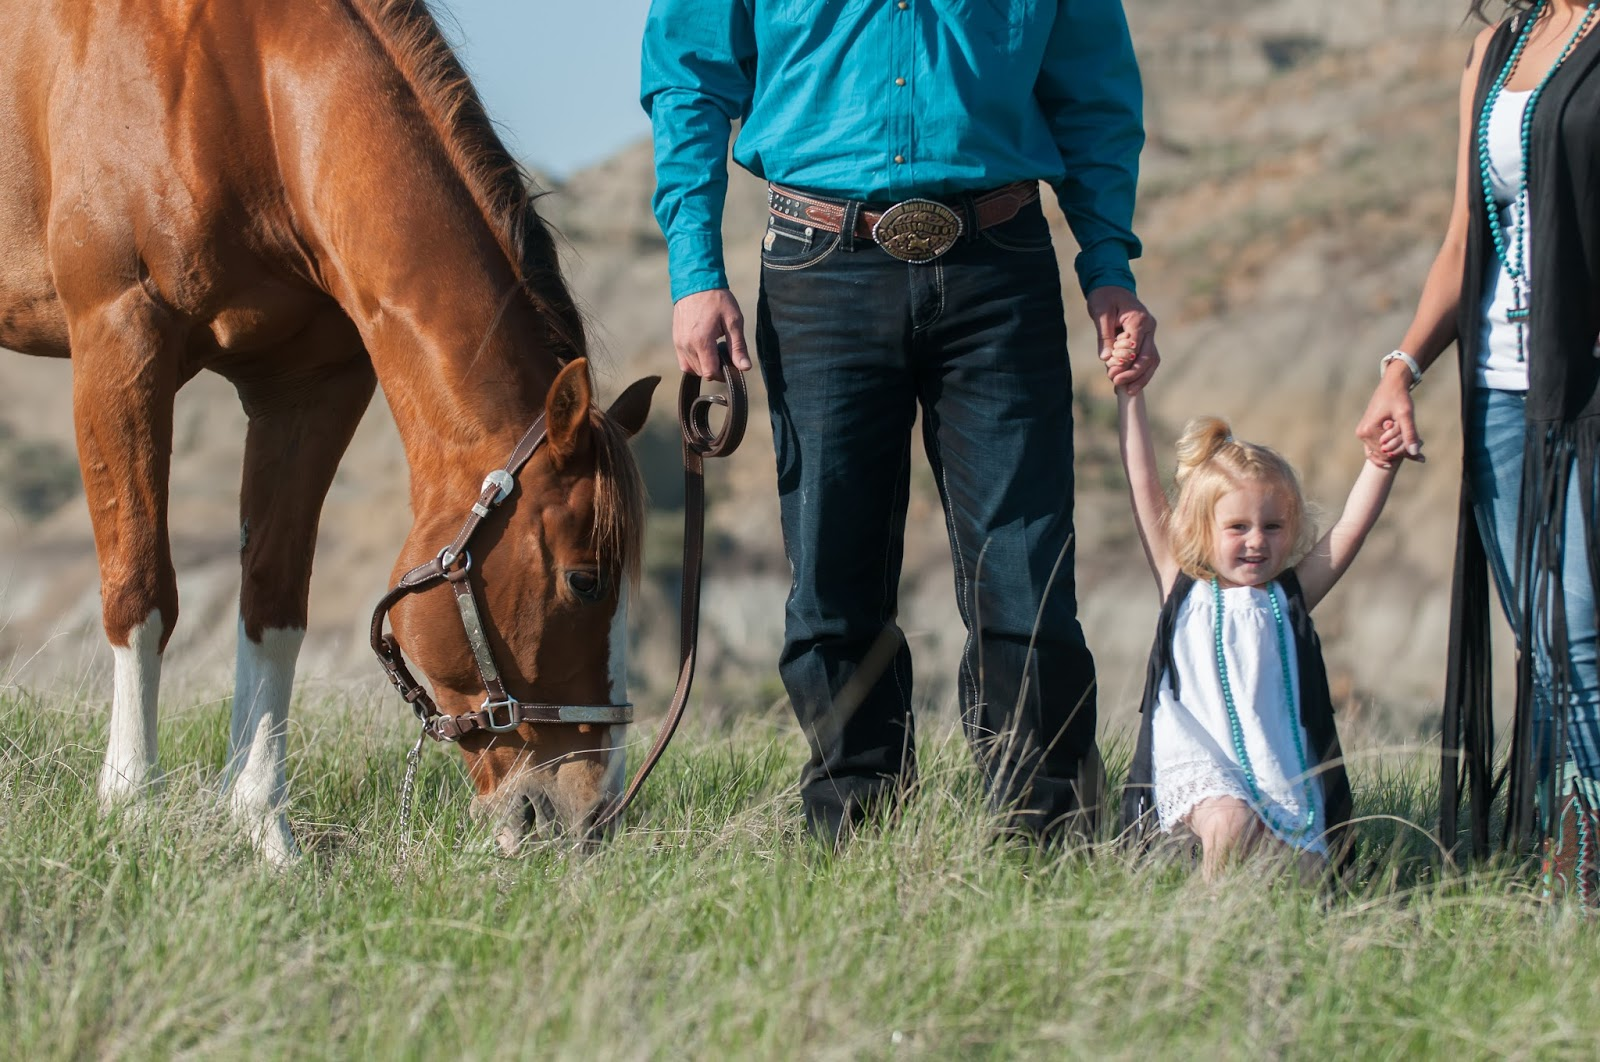 E-session, Montana, Whitney Bird Photography, Cowgirl, Horse